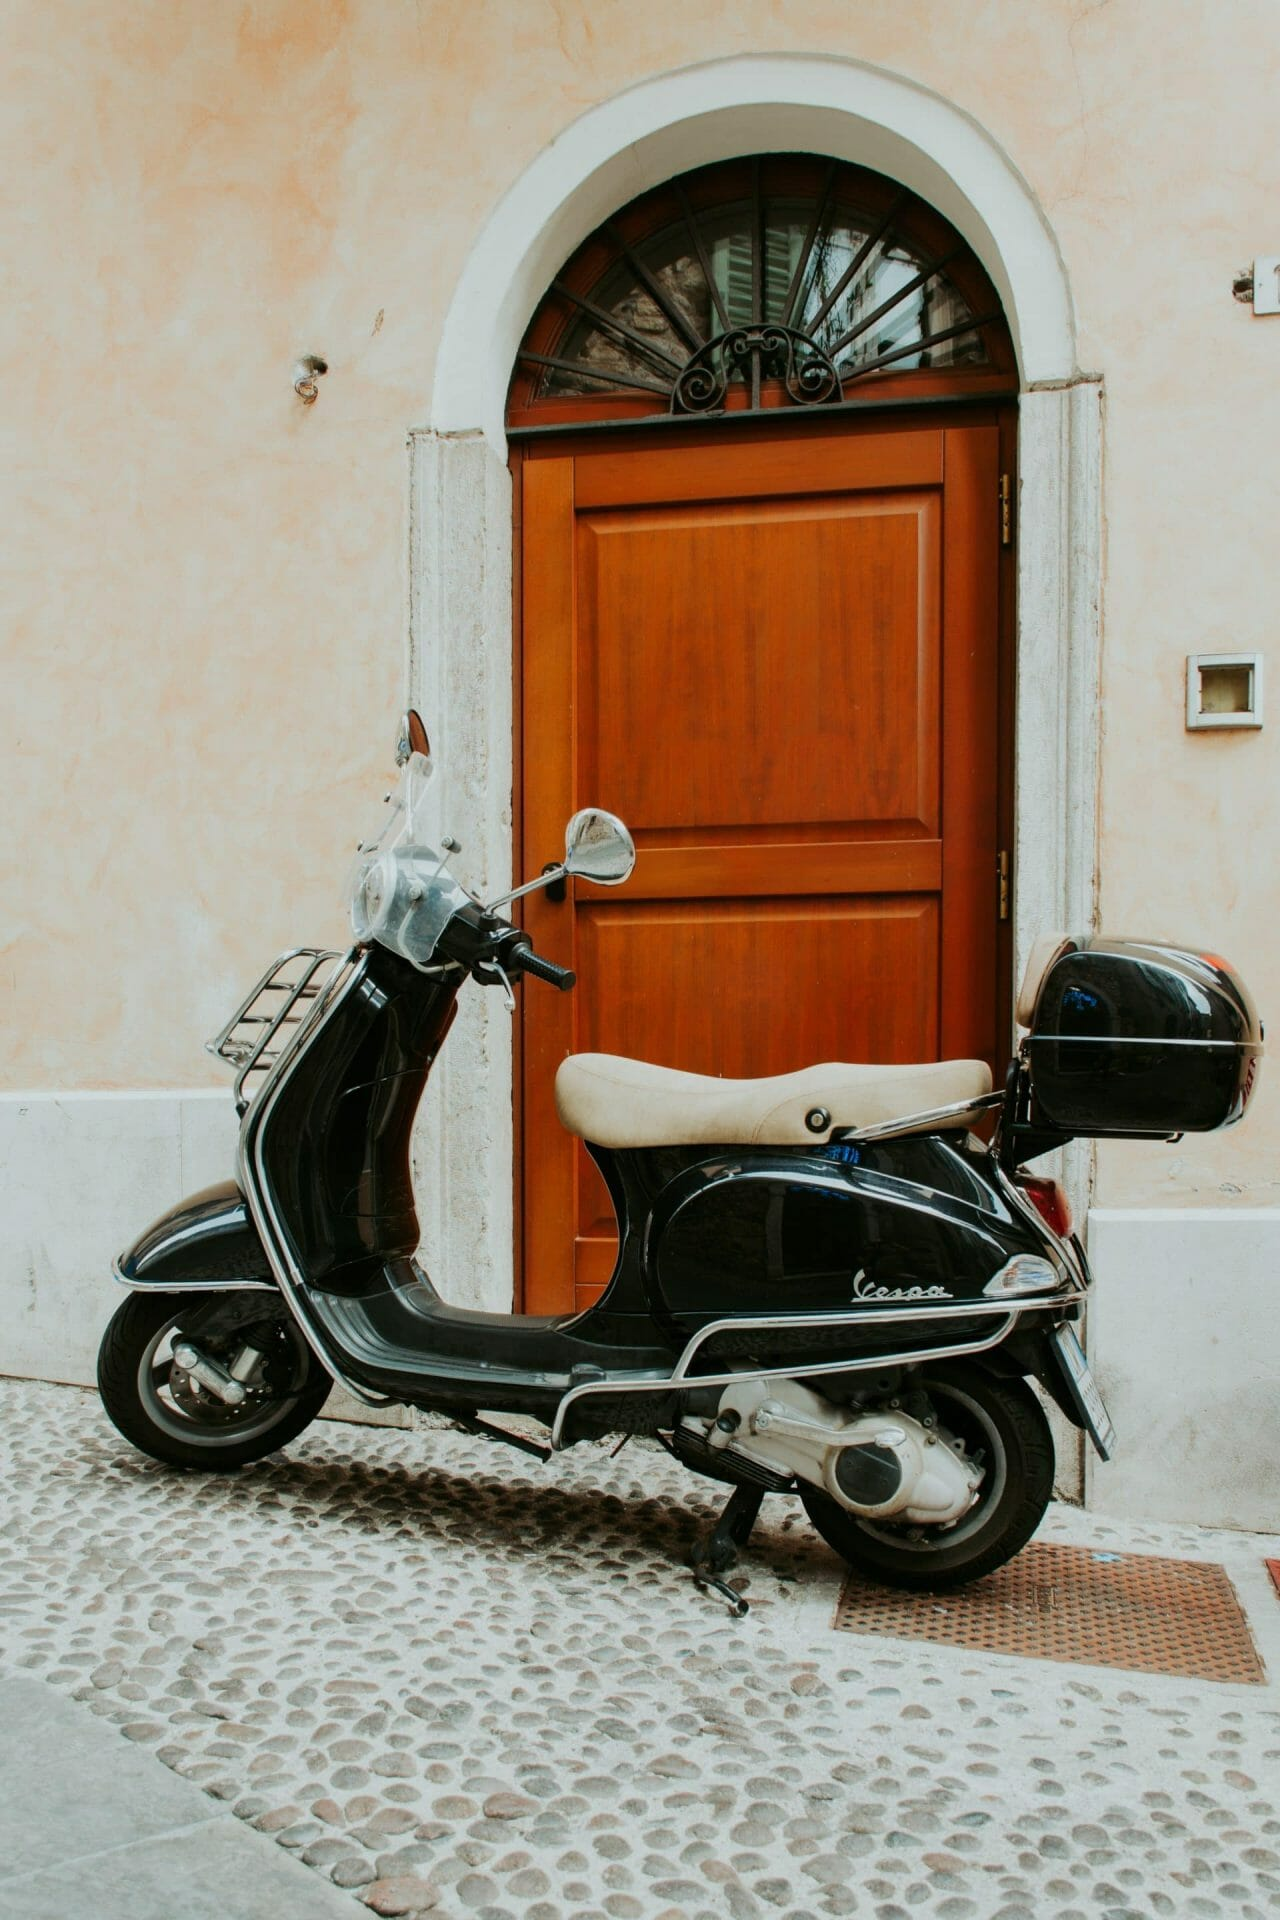 picture of motocycle by door for Real Estate News Podcast for Investors Episode #449